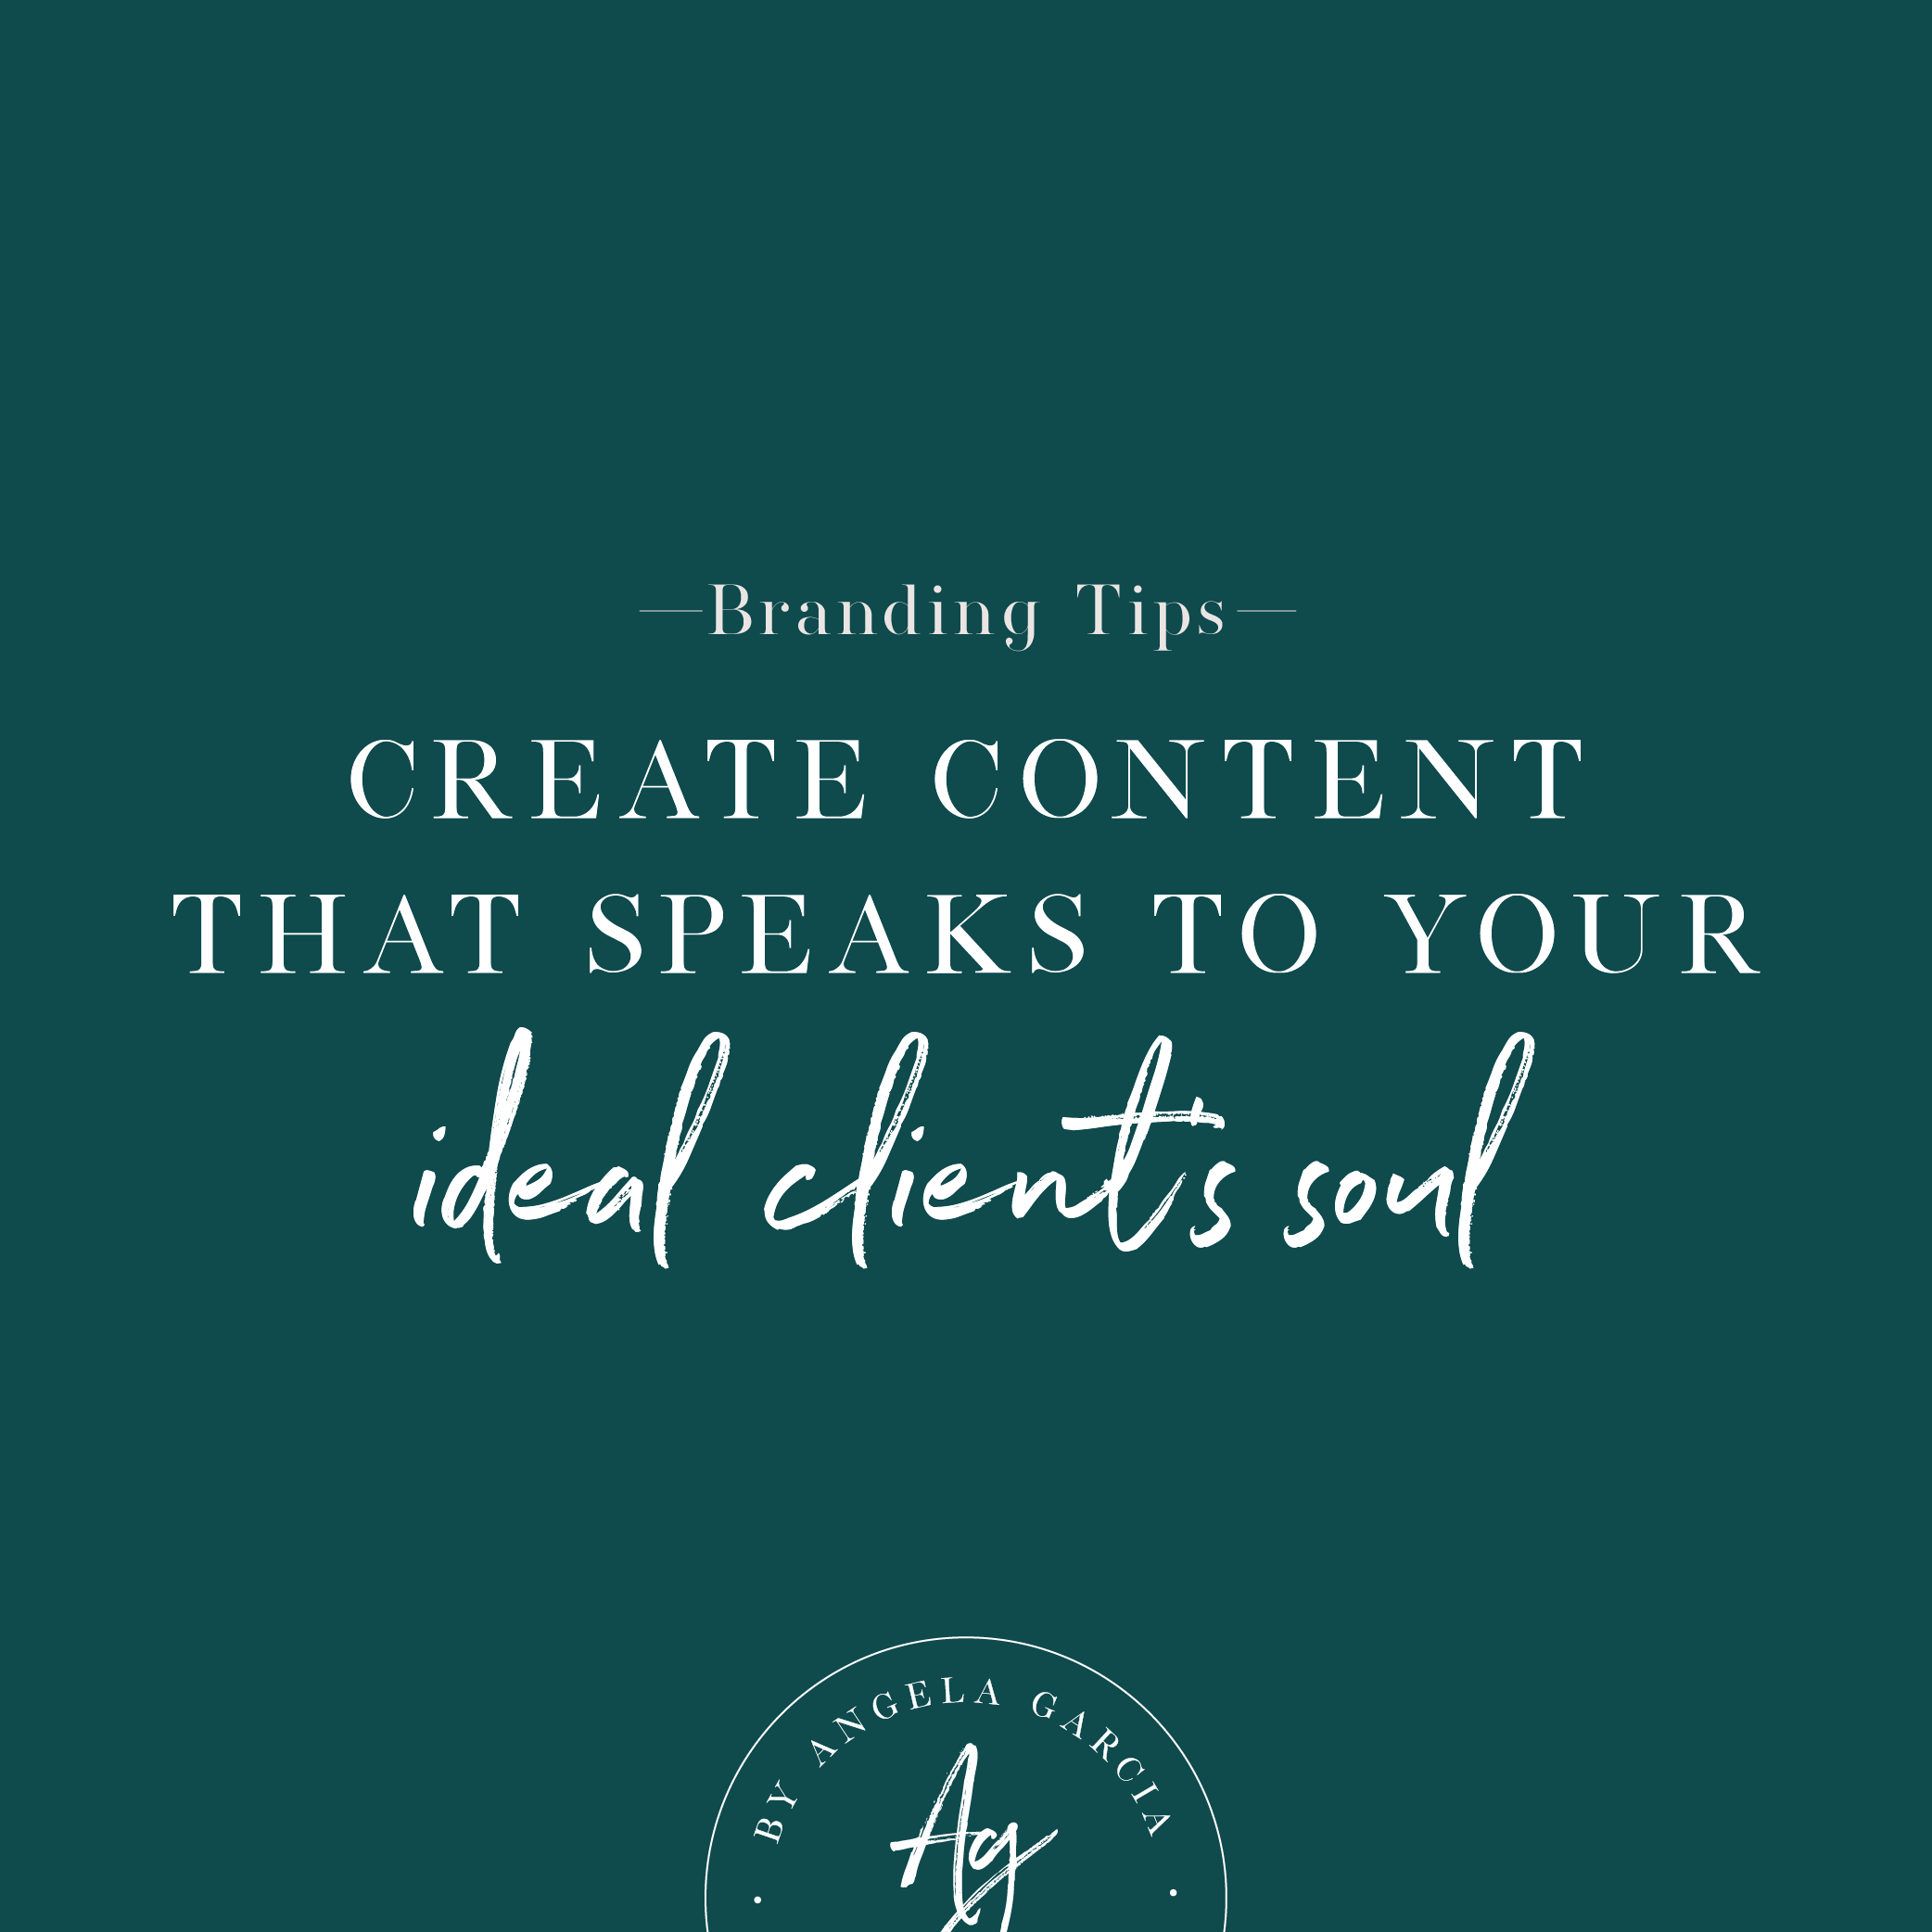 Create content that speaks to your ideal client's soul